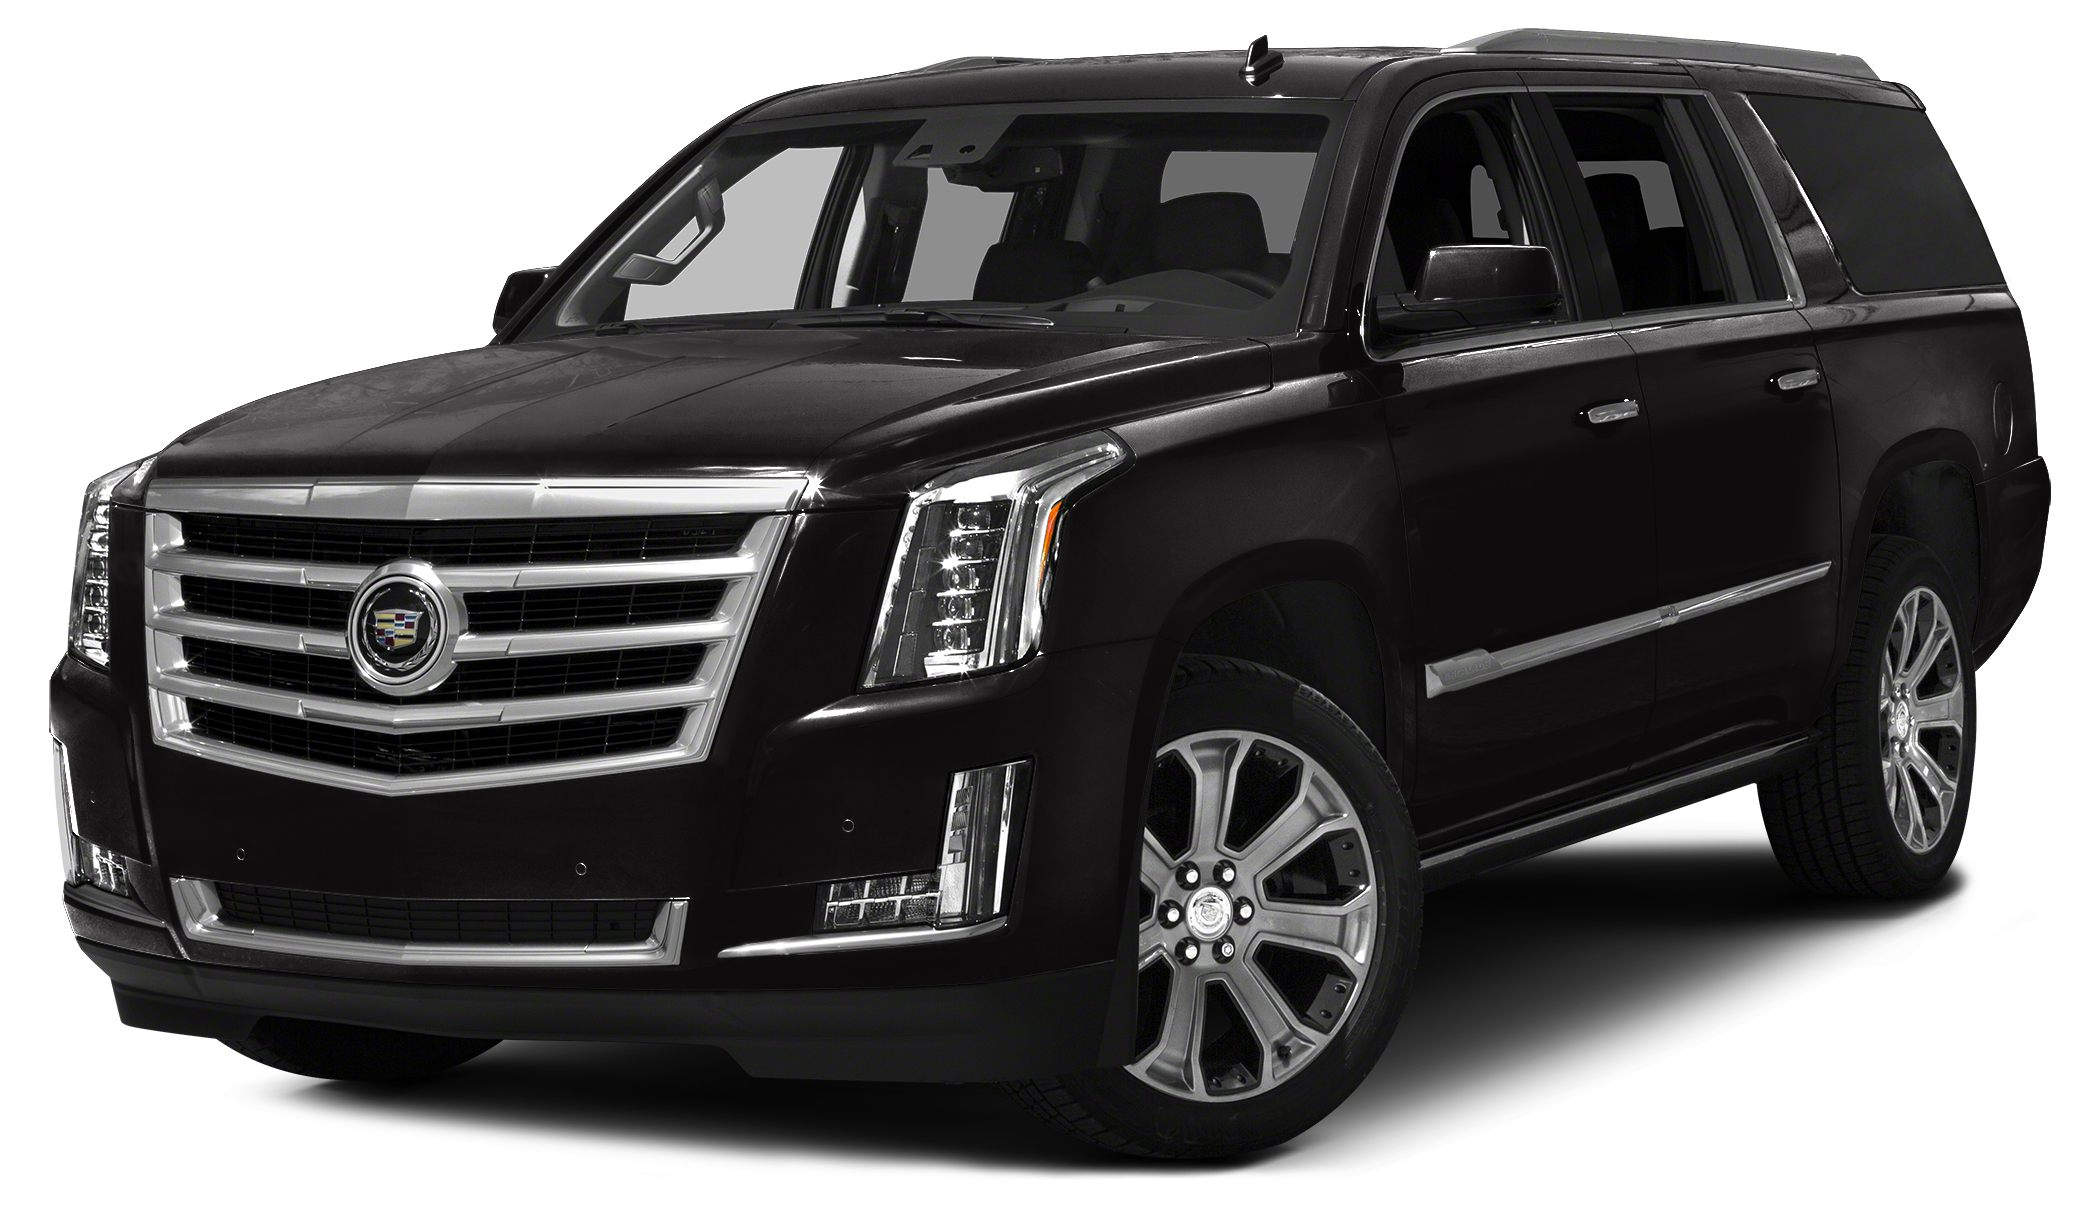 2015 Cadillac Escalade ESV Luxury The well-recognized Escalade has been among the Kings of the SUV